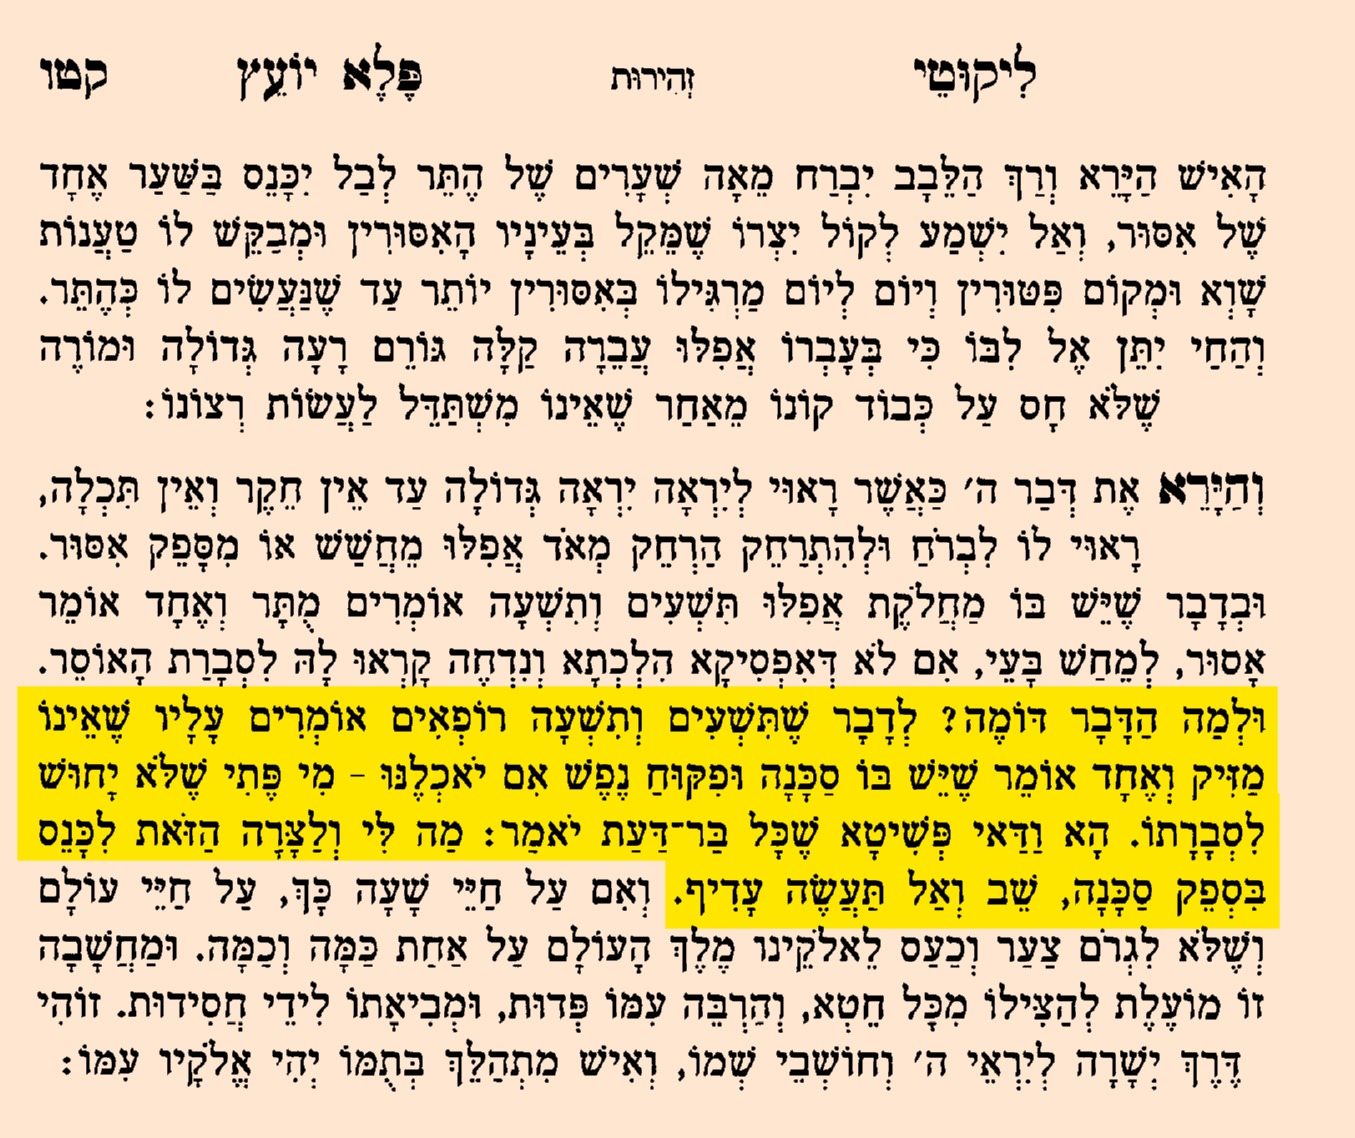 Text from Pele Yoetz about risk of danger